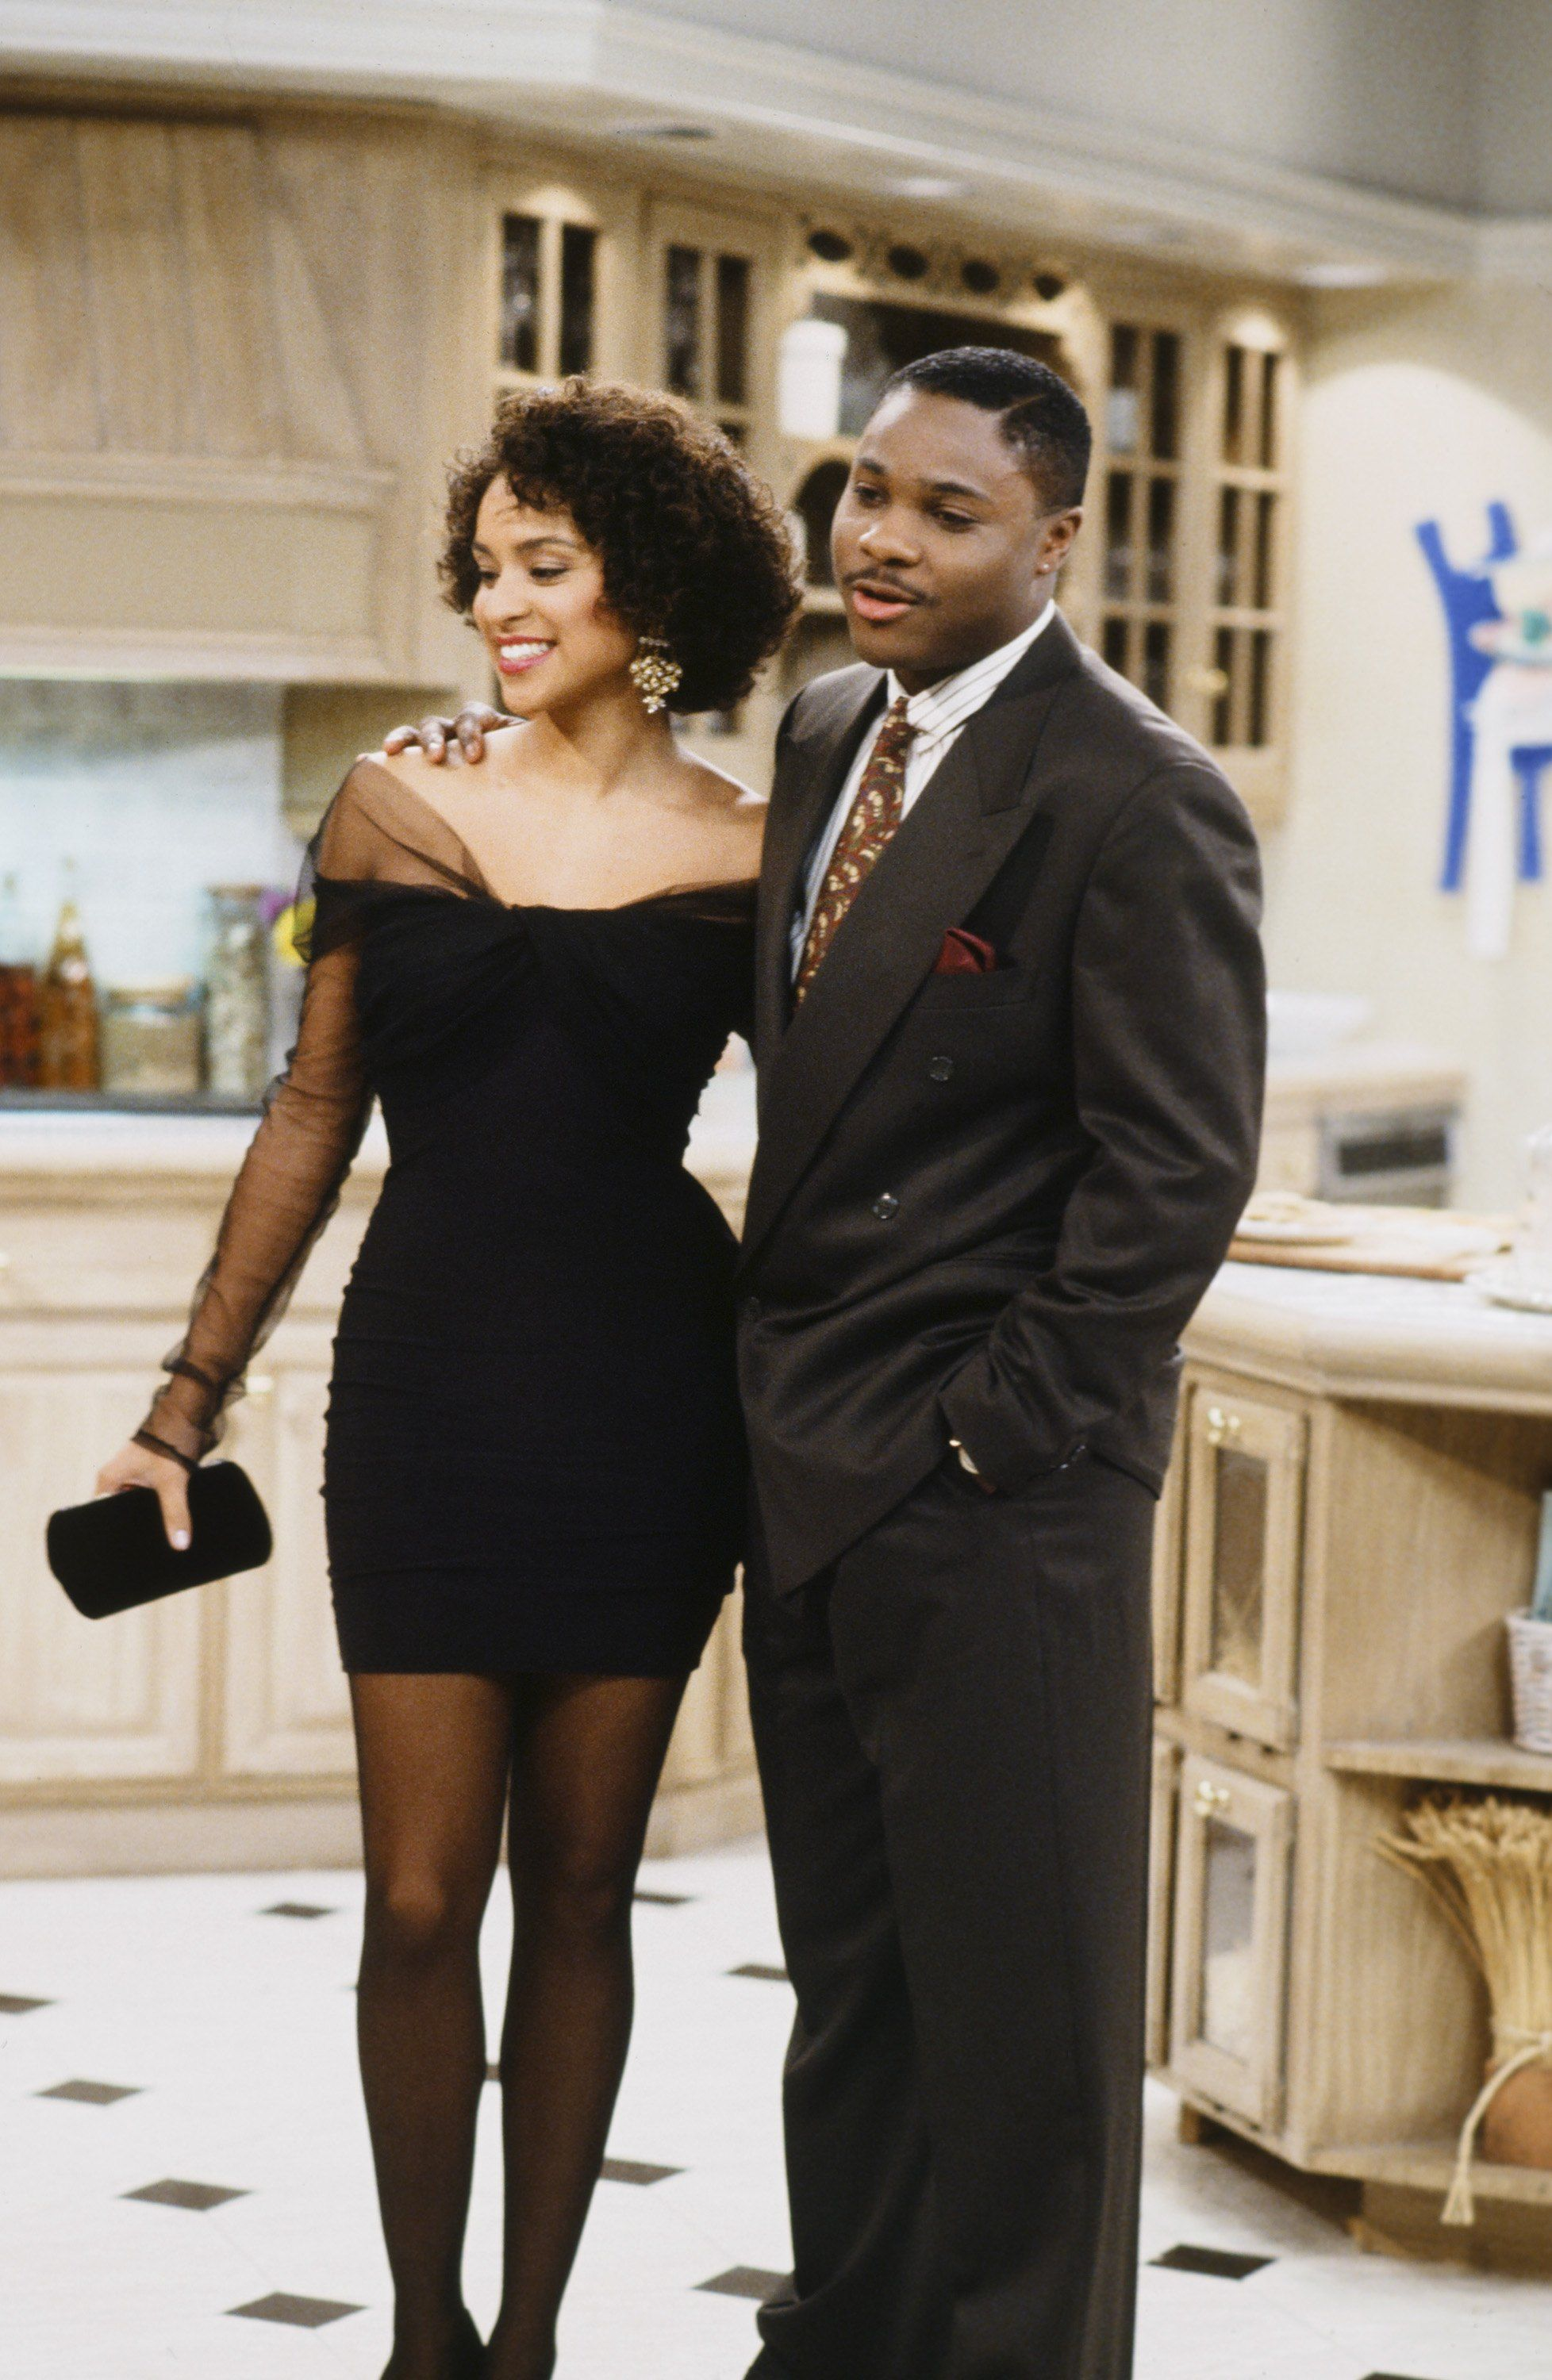 Hilary Banks Fresh Prince Of Bel Air Hilary Banks Made Waves As The Ultimate Glamour Girl Fashion Prince Of Bel Air Bank Fashion